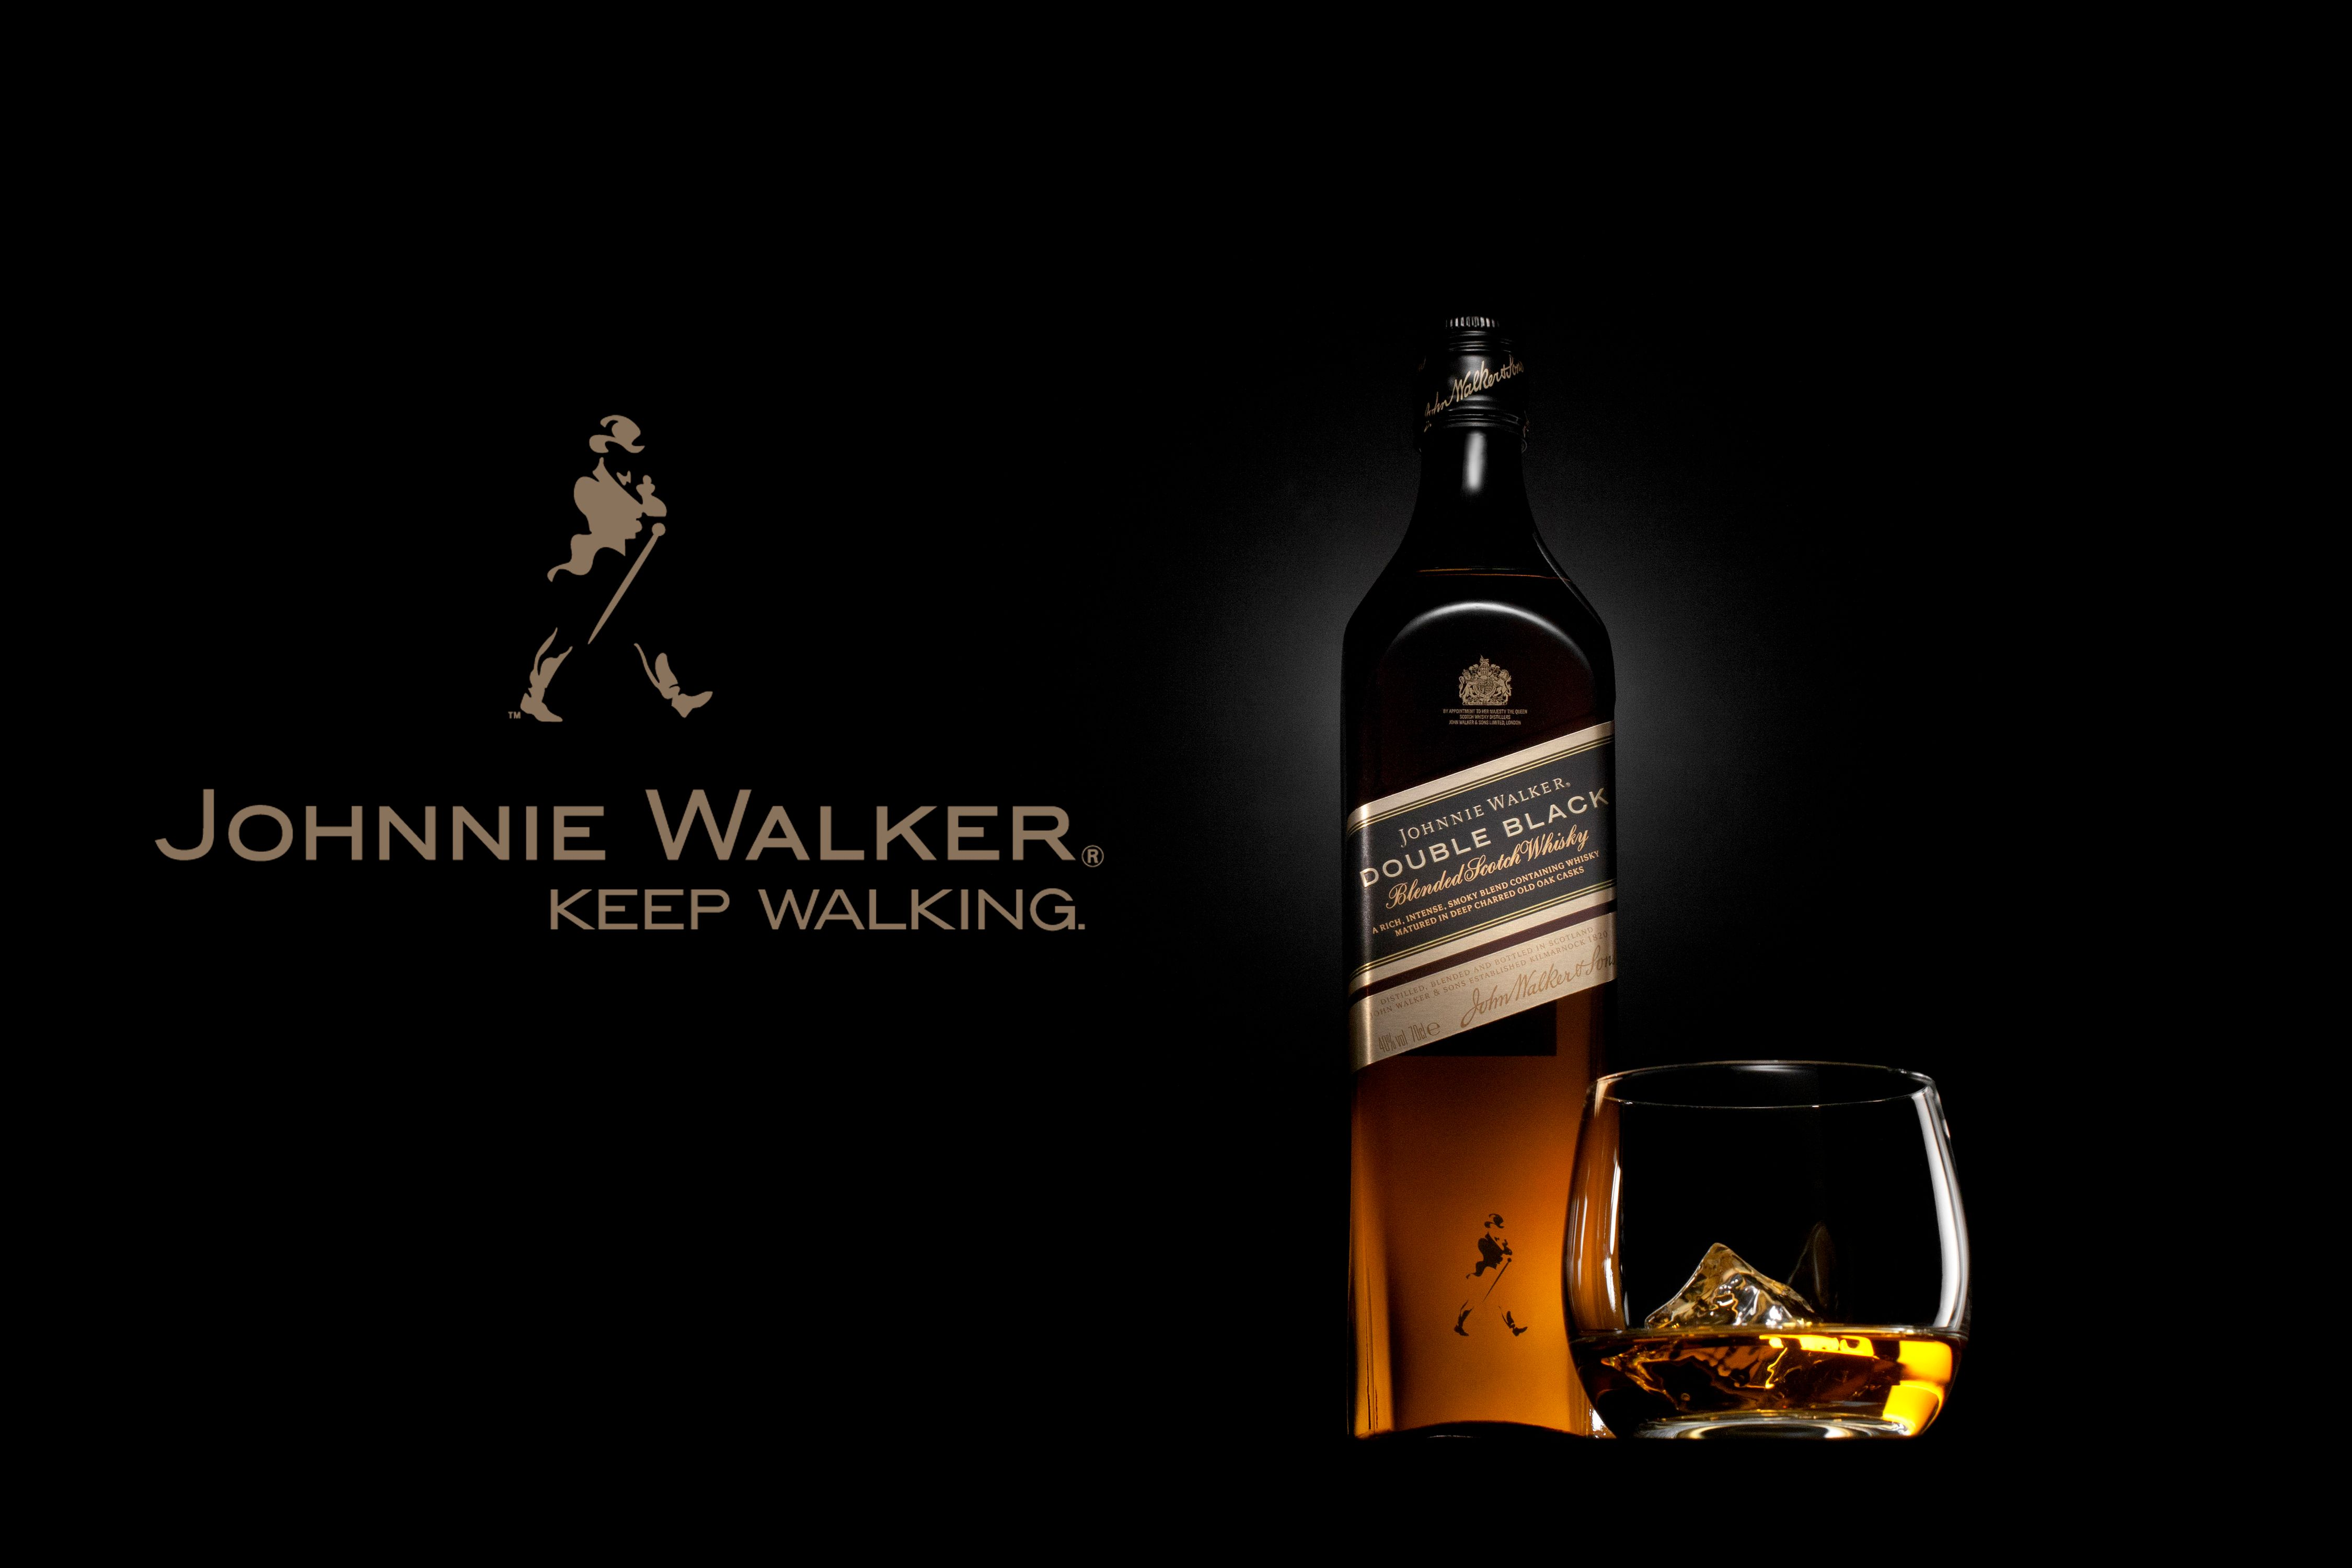 johnnie walker final.jpg